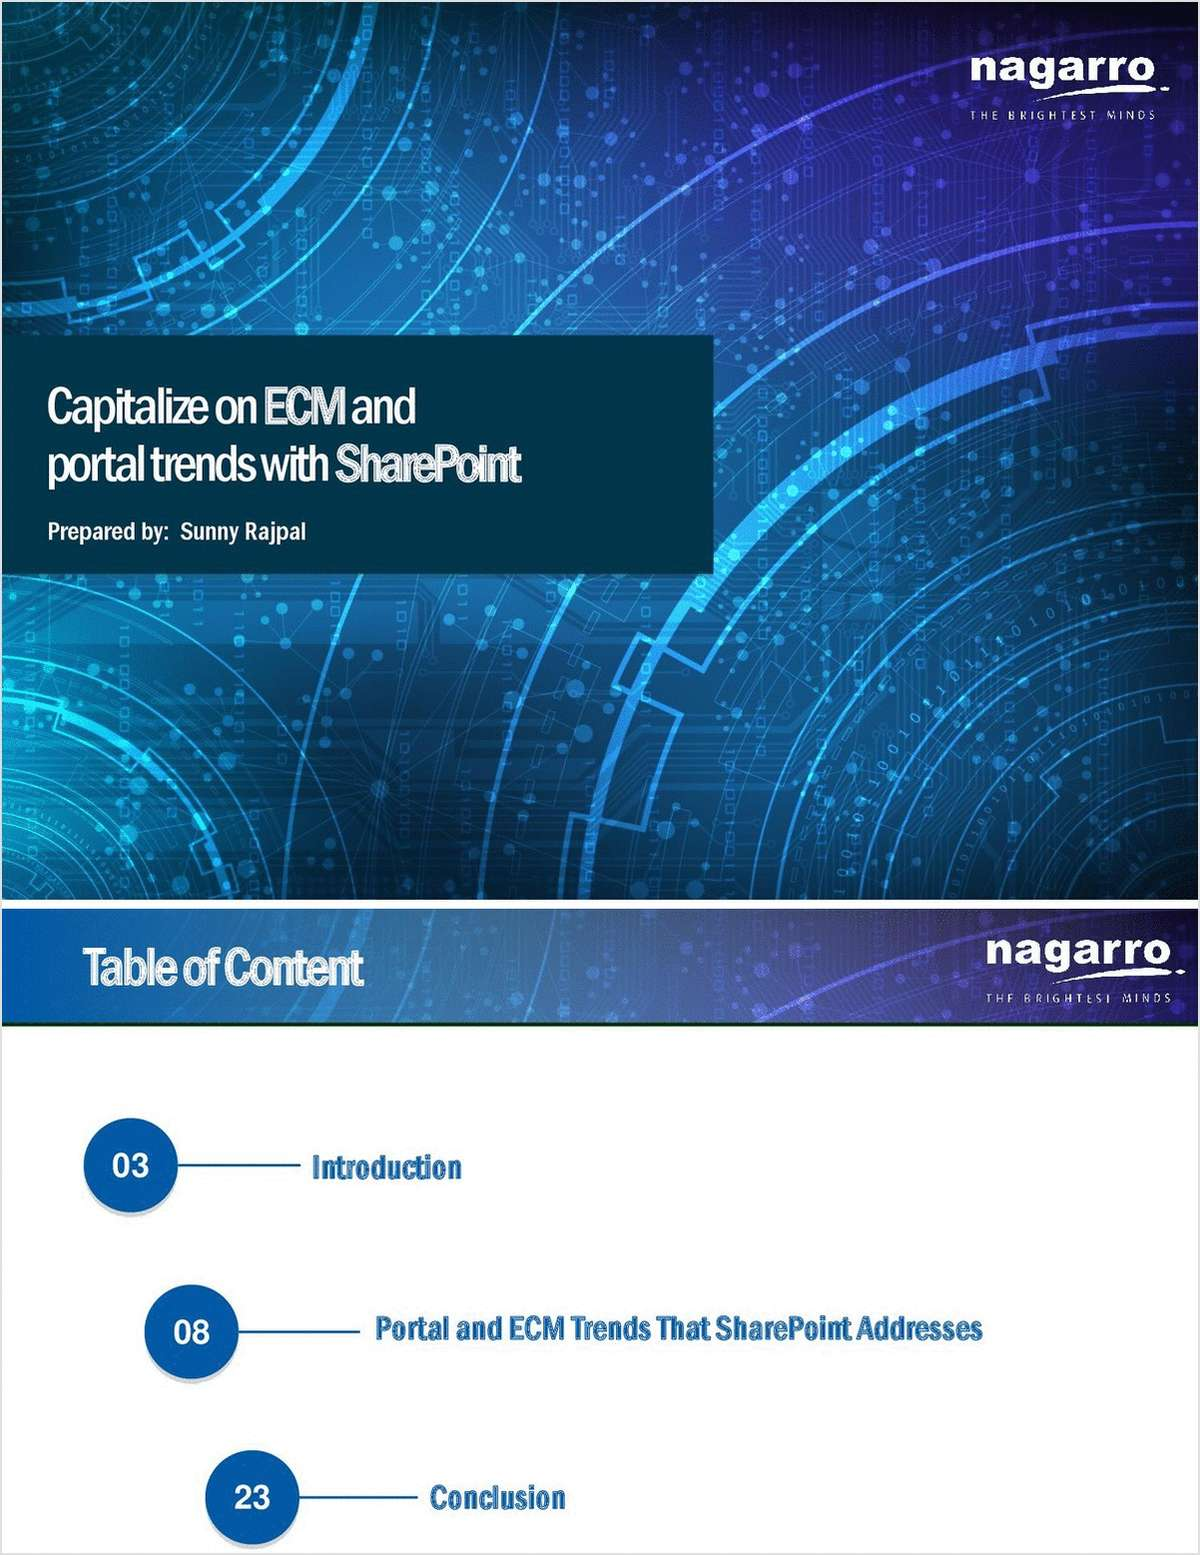 Capitalize on ECM and Portal trends with SharePoint